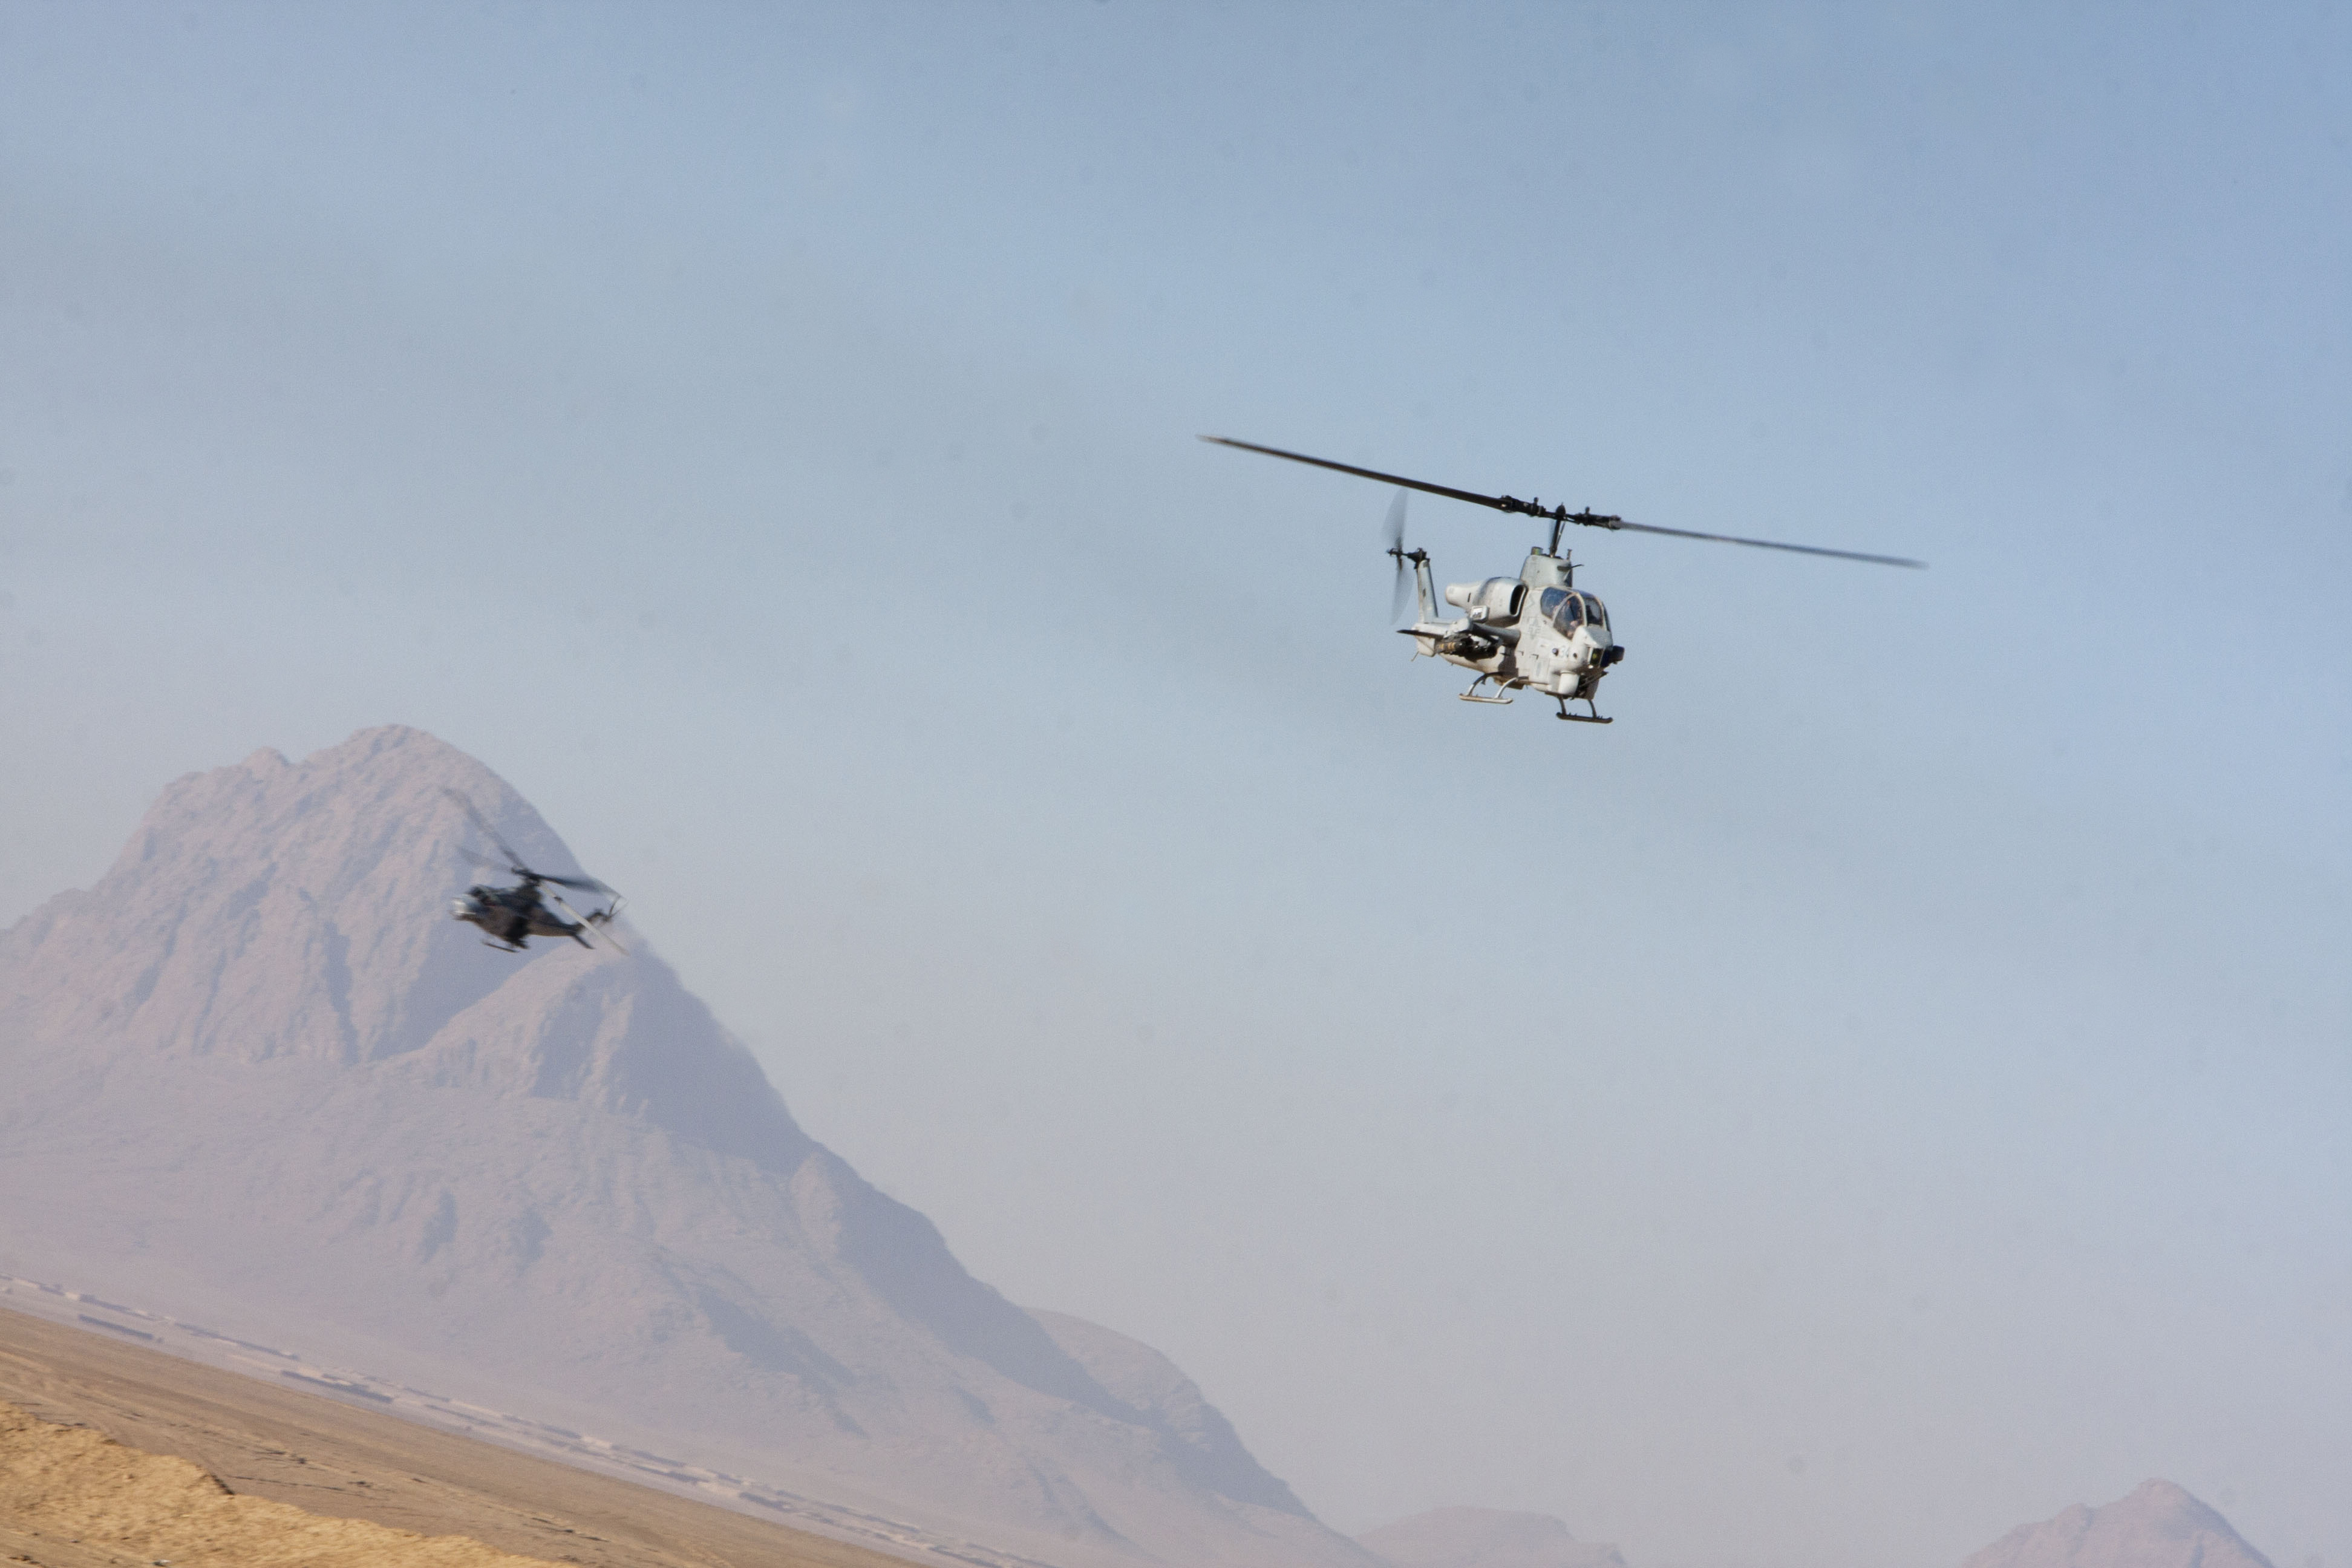 File:A U.S. Marine Corps UH-1Y Venom helicopter (left) and ...